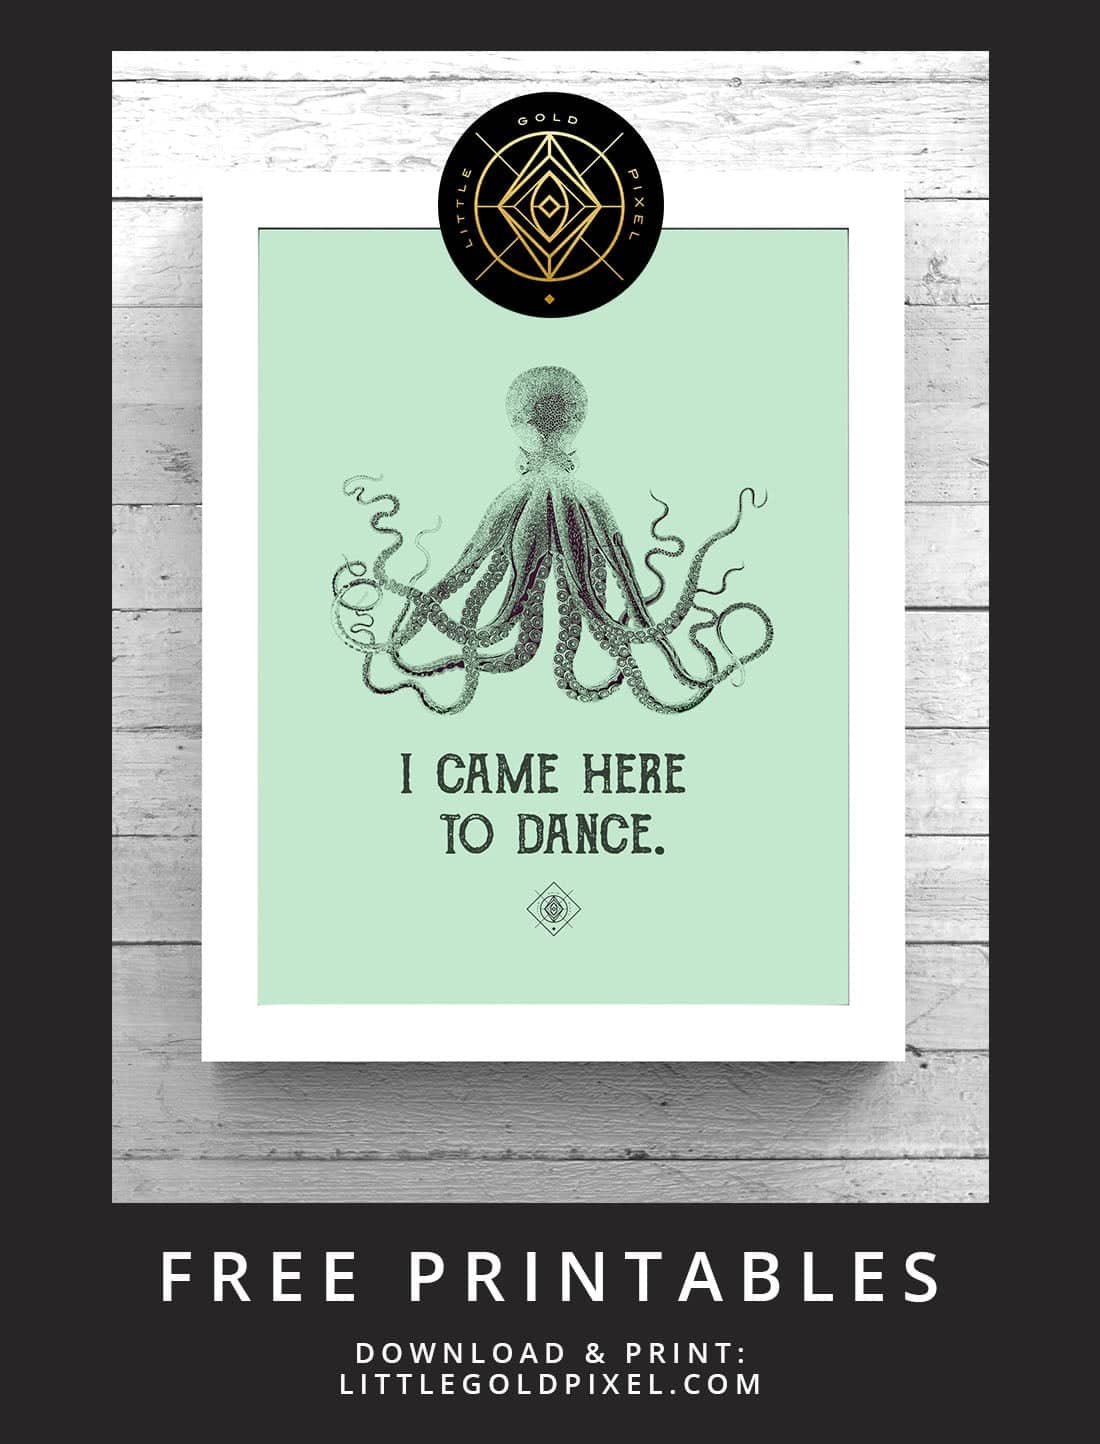 Octopus Free Printable Freebie Fridays Little Gold Pixel